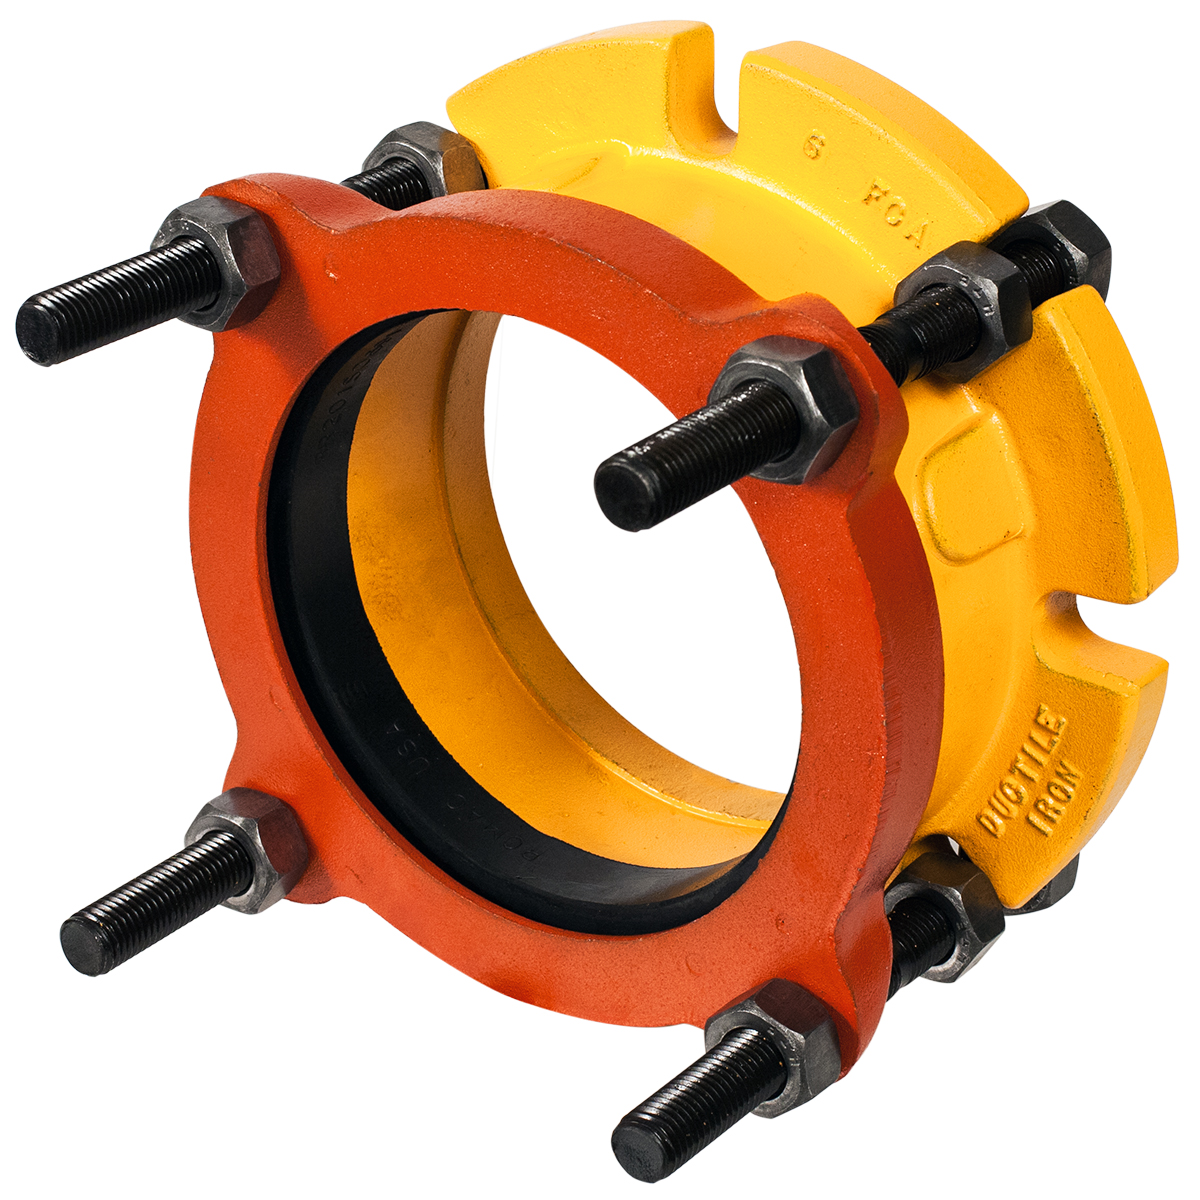 FCA501 - Ductile iron flanged coupling adapter